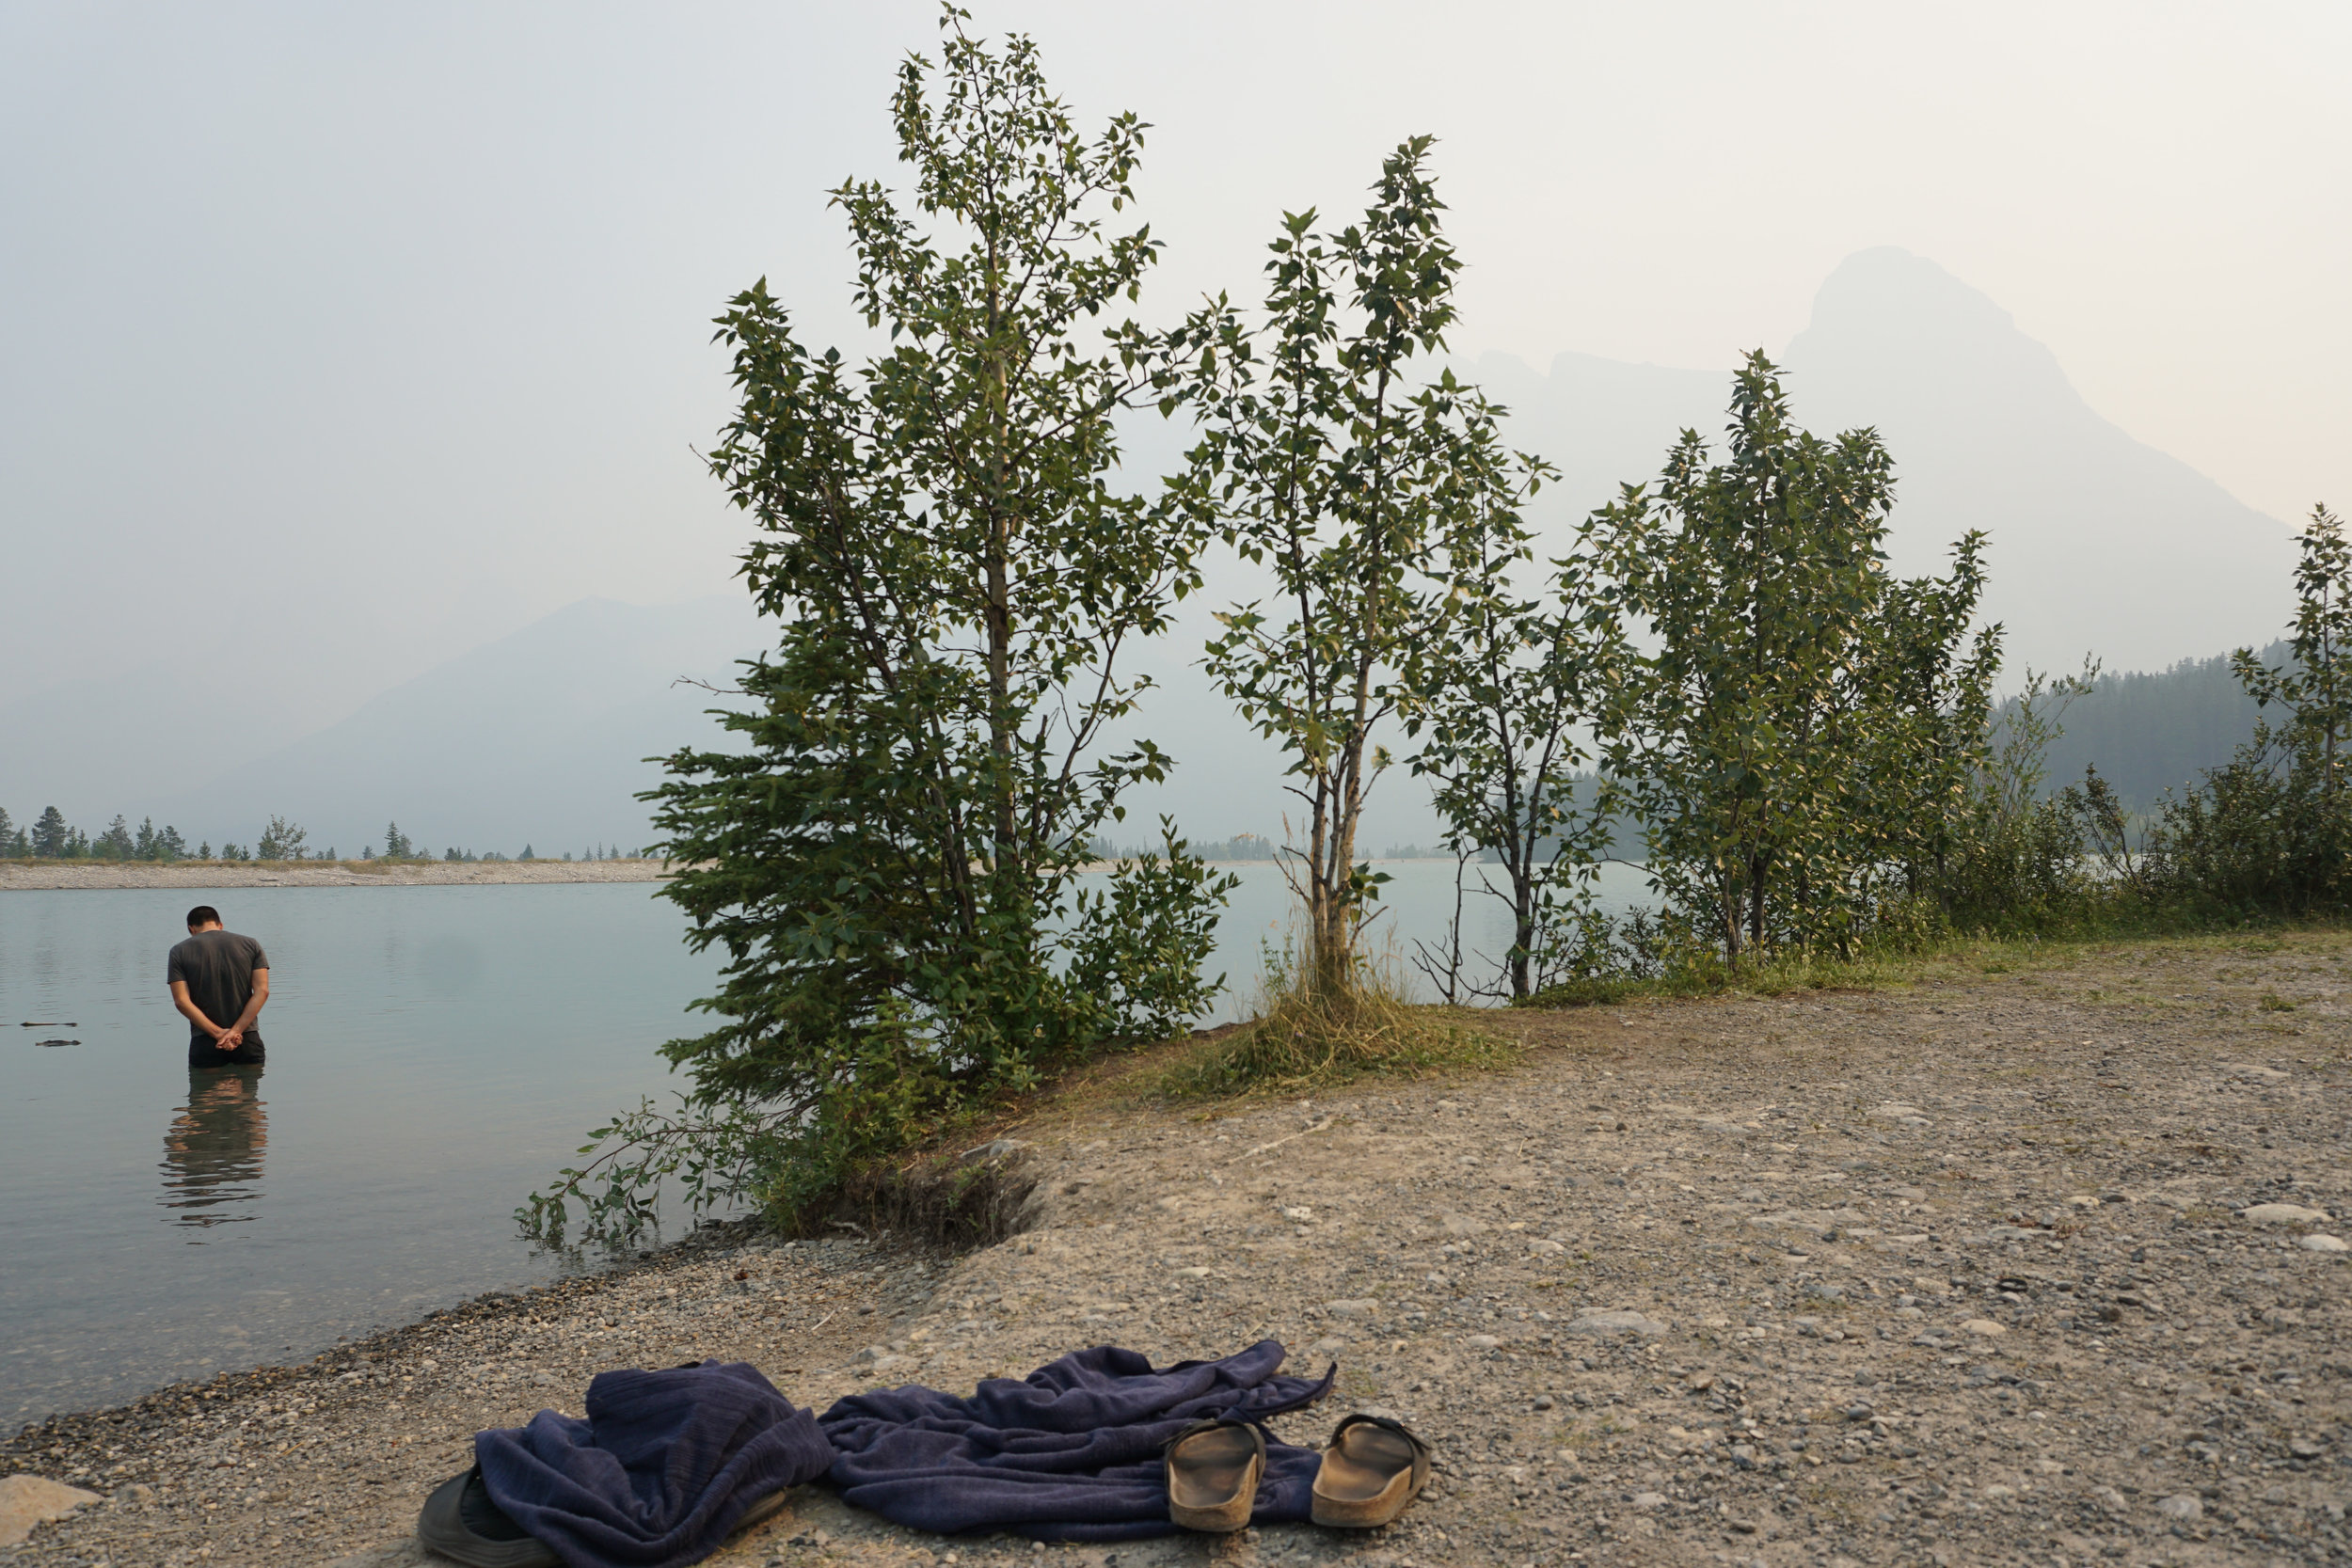 One of the goals this season was to swim in as many lakes as possible. Dave and I were pretty successful at this. Here, we are doing an Ice Bath in a glacial lake in Canmore, AB a few days before Nationals. The Wildfires in BC and AB were enormous this summer and the smoke situation was bad in the days leading to the race. However, it all cleared up for race day!